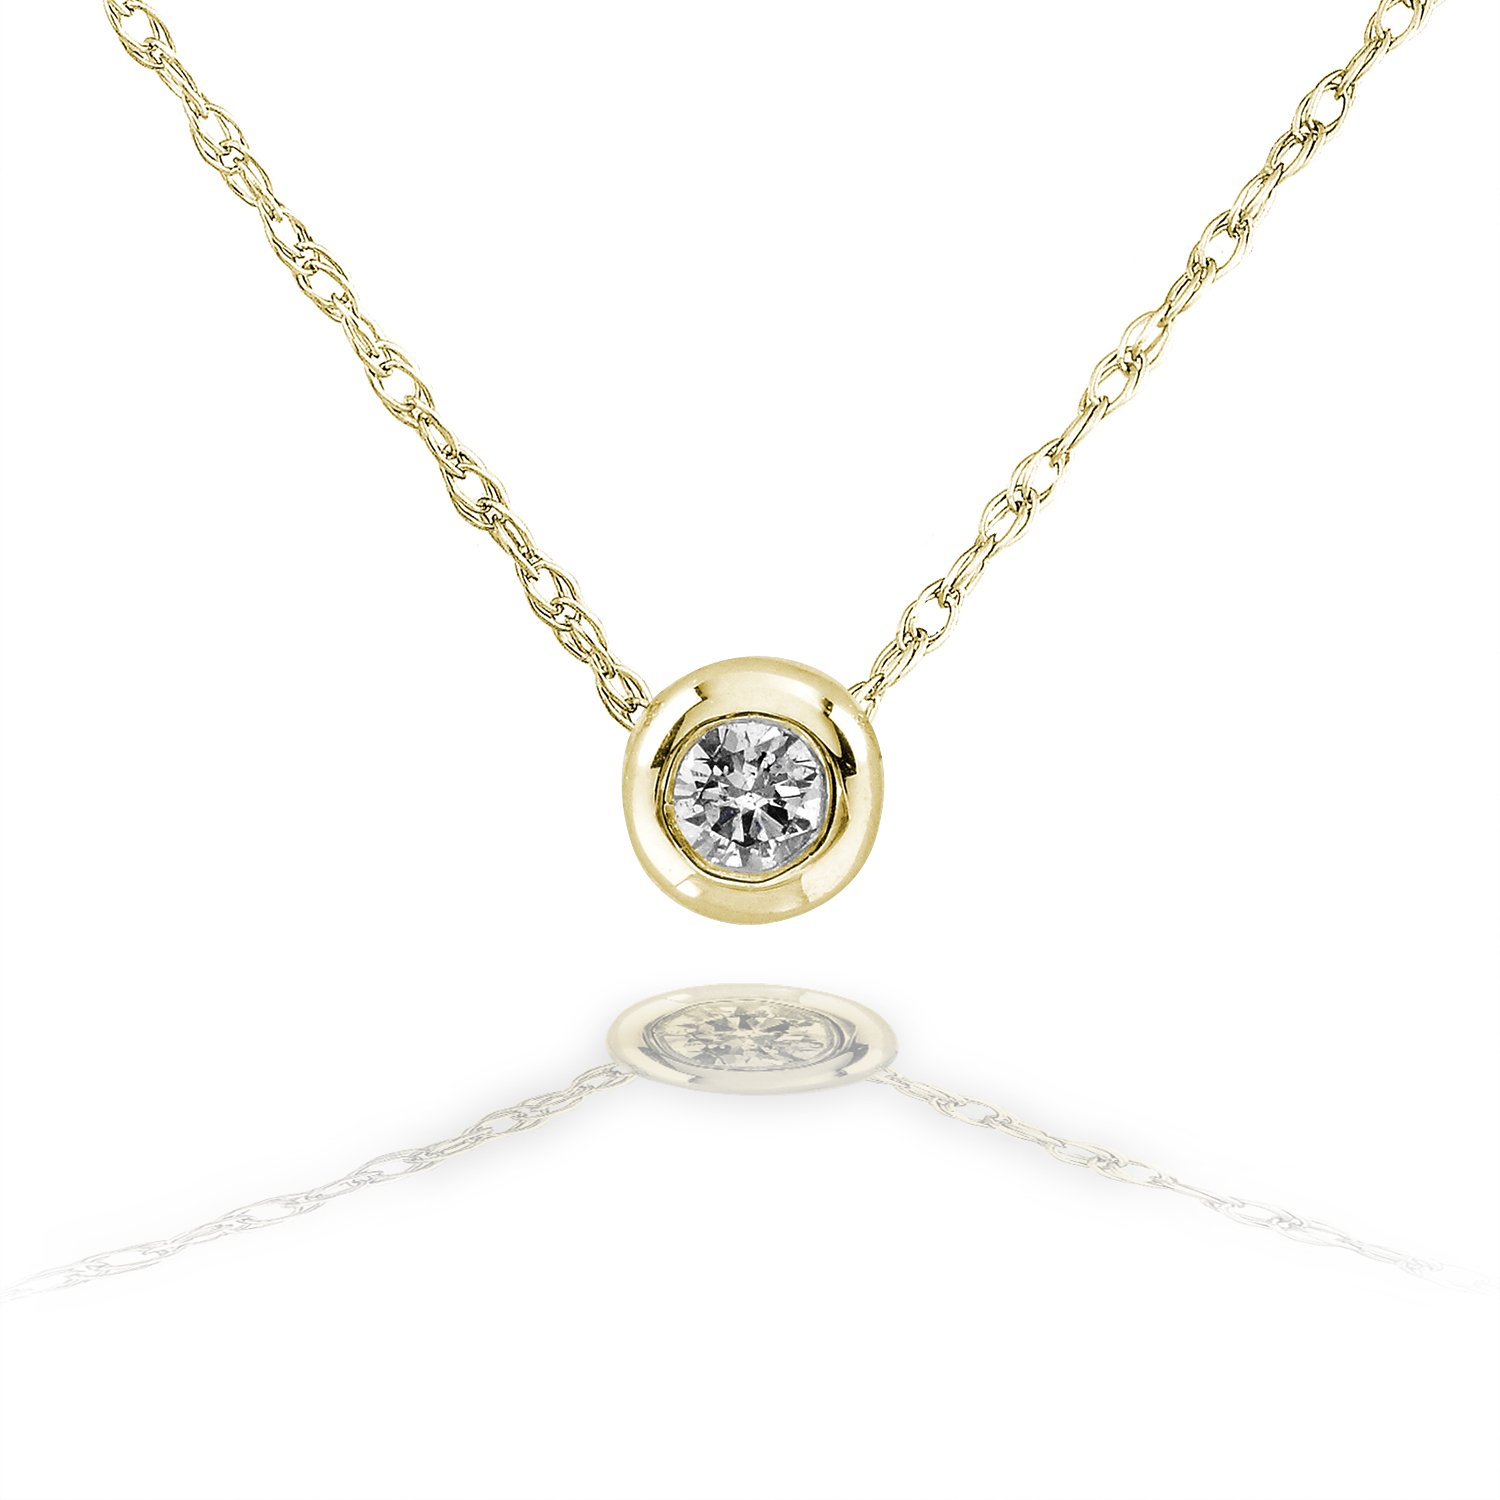 pdp white gold johnlewis diamond ewa necklace lewis com solitaire buyewa online rsp main at pendant john